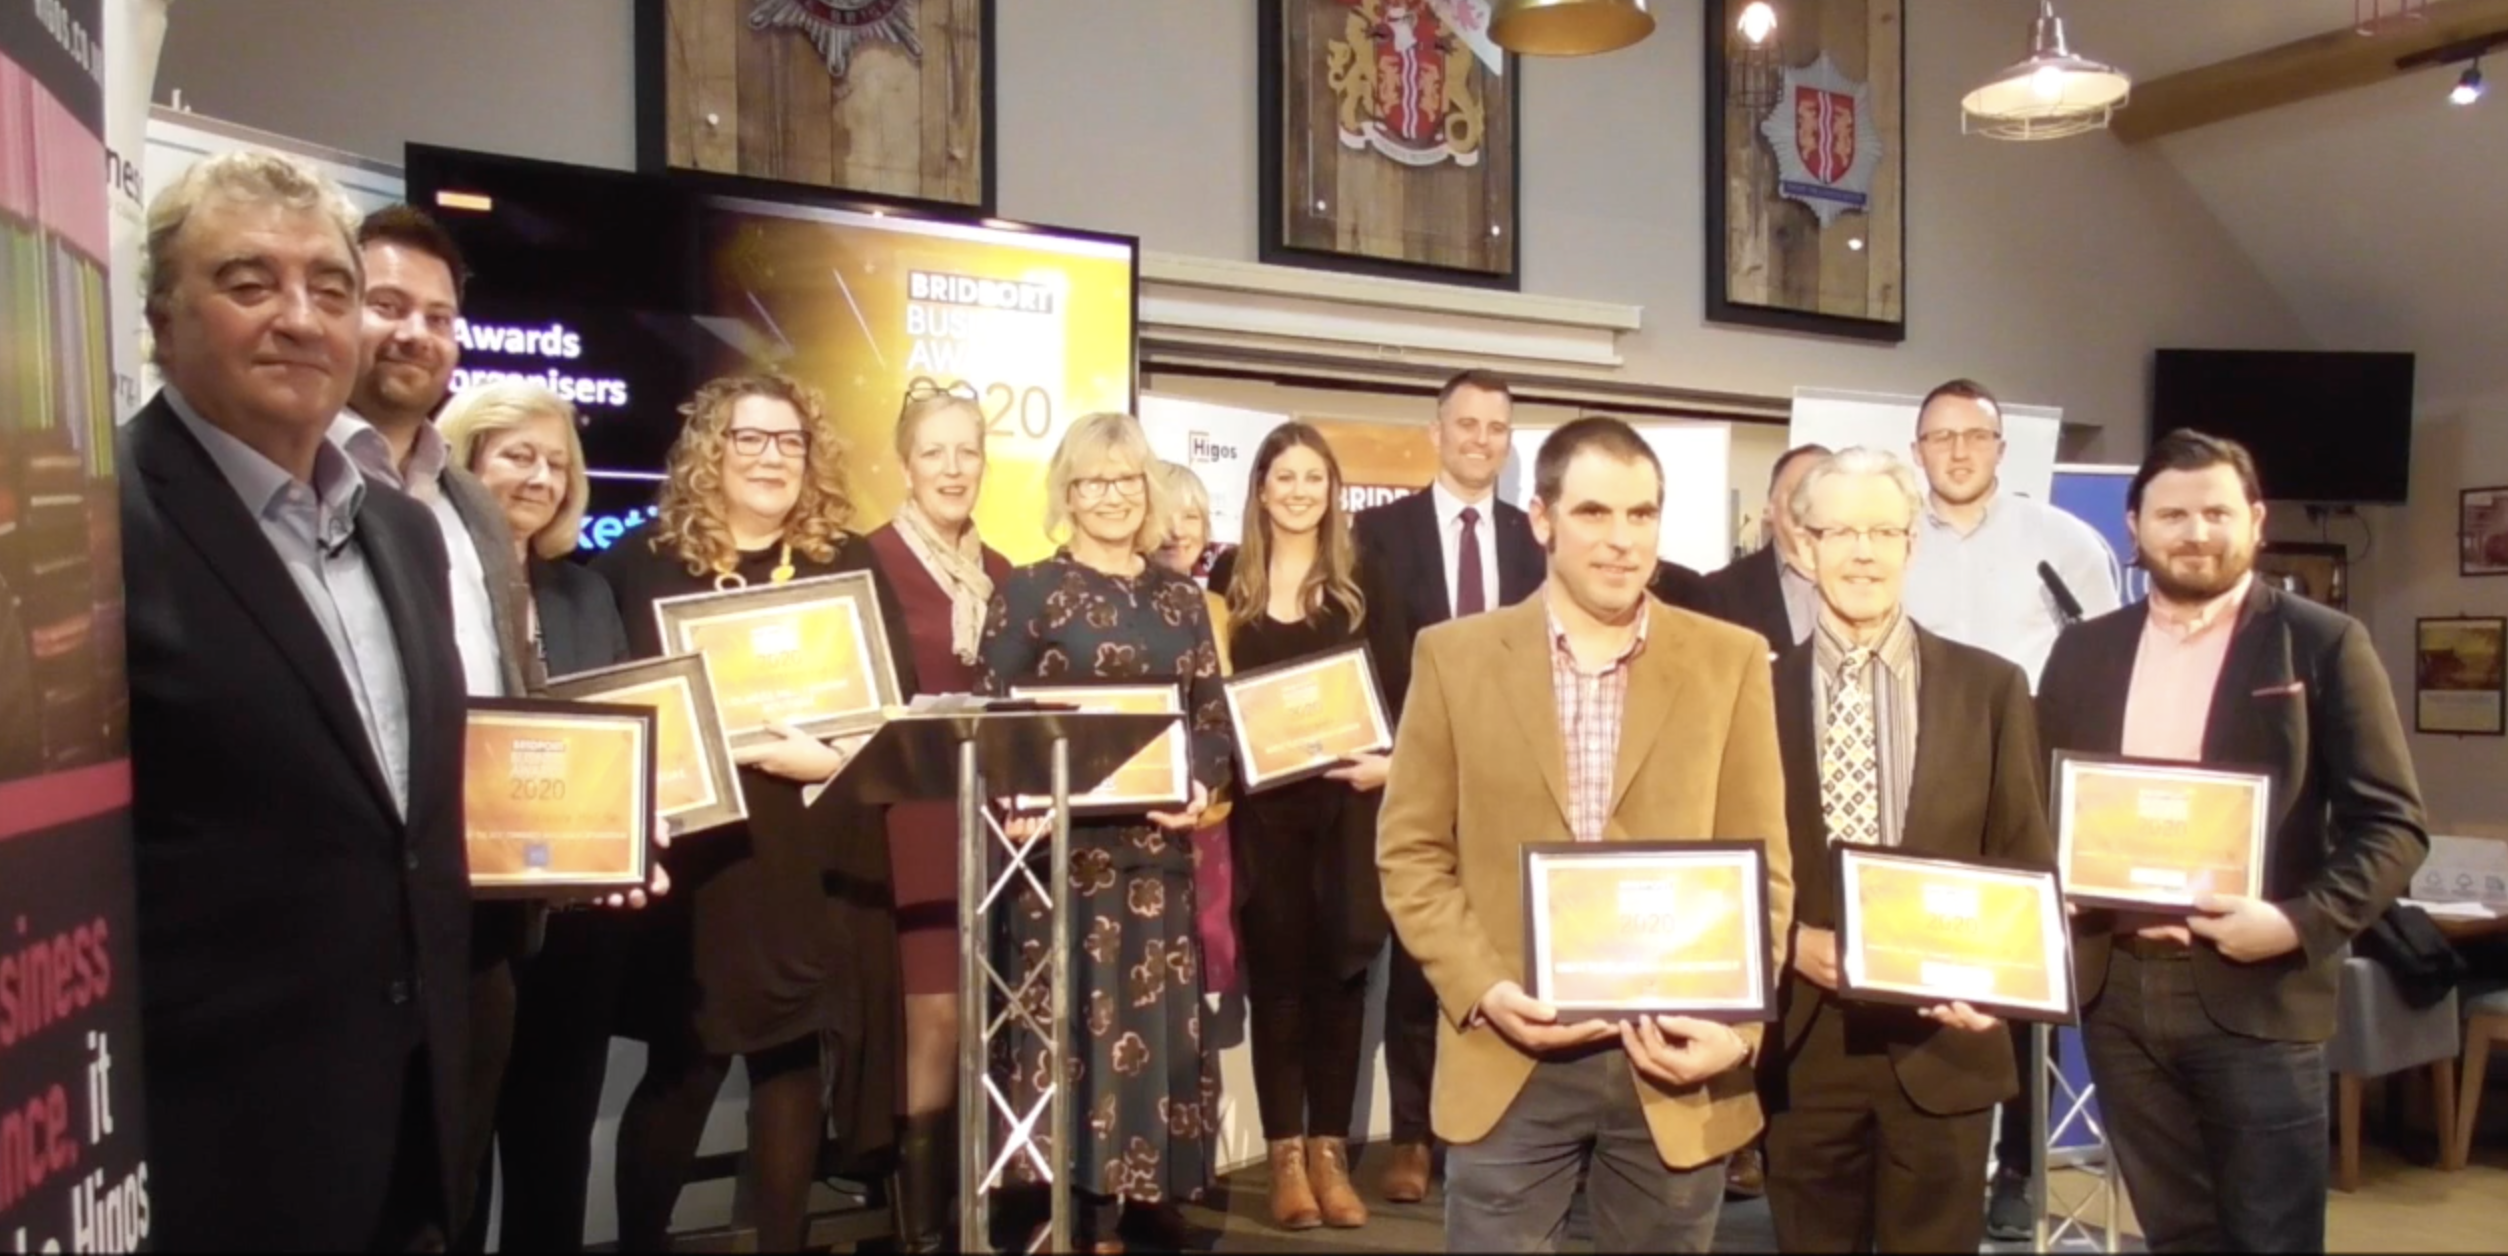 Bridport Business Awards – A Huge Success!